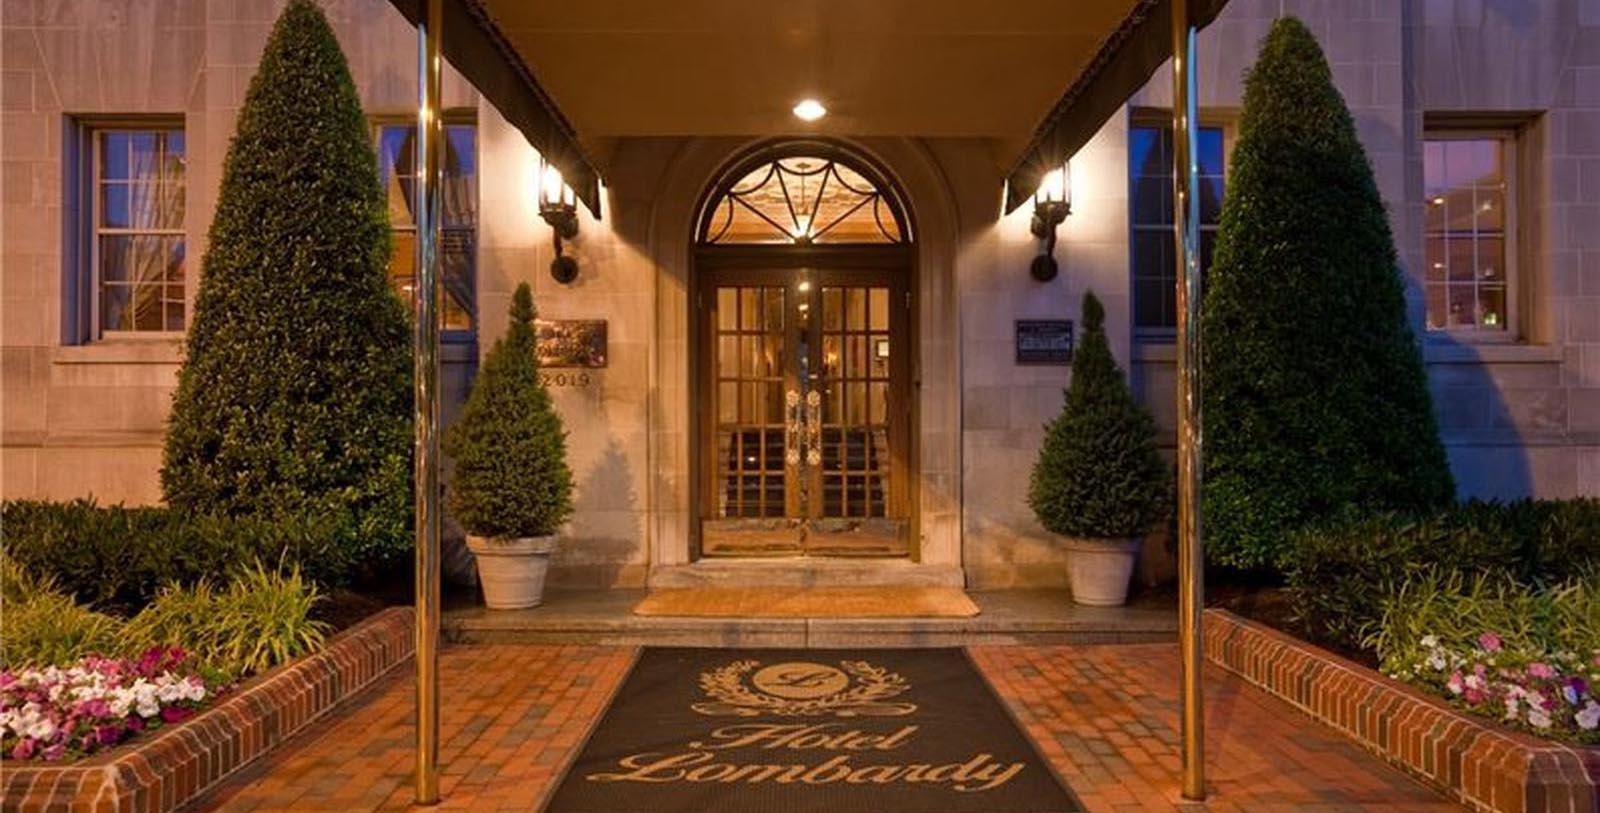 Image of Exterior at Night, Hotel Lombardy in Washington, DC, 1929, Member of Historic Hotels of America, Discover